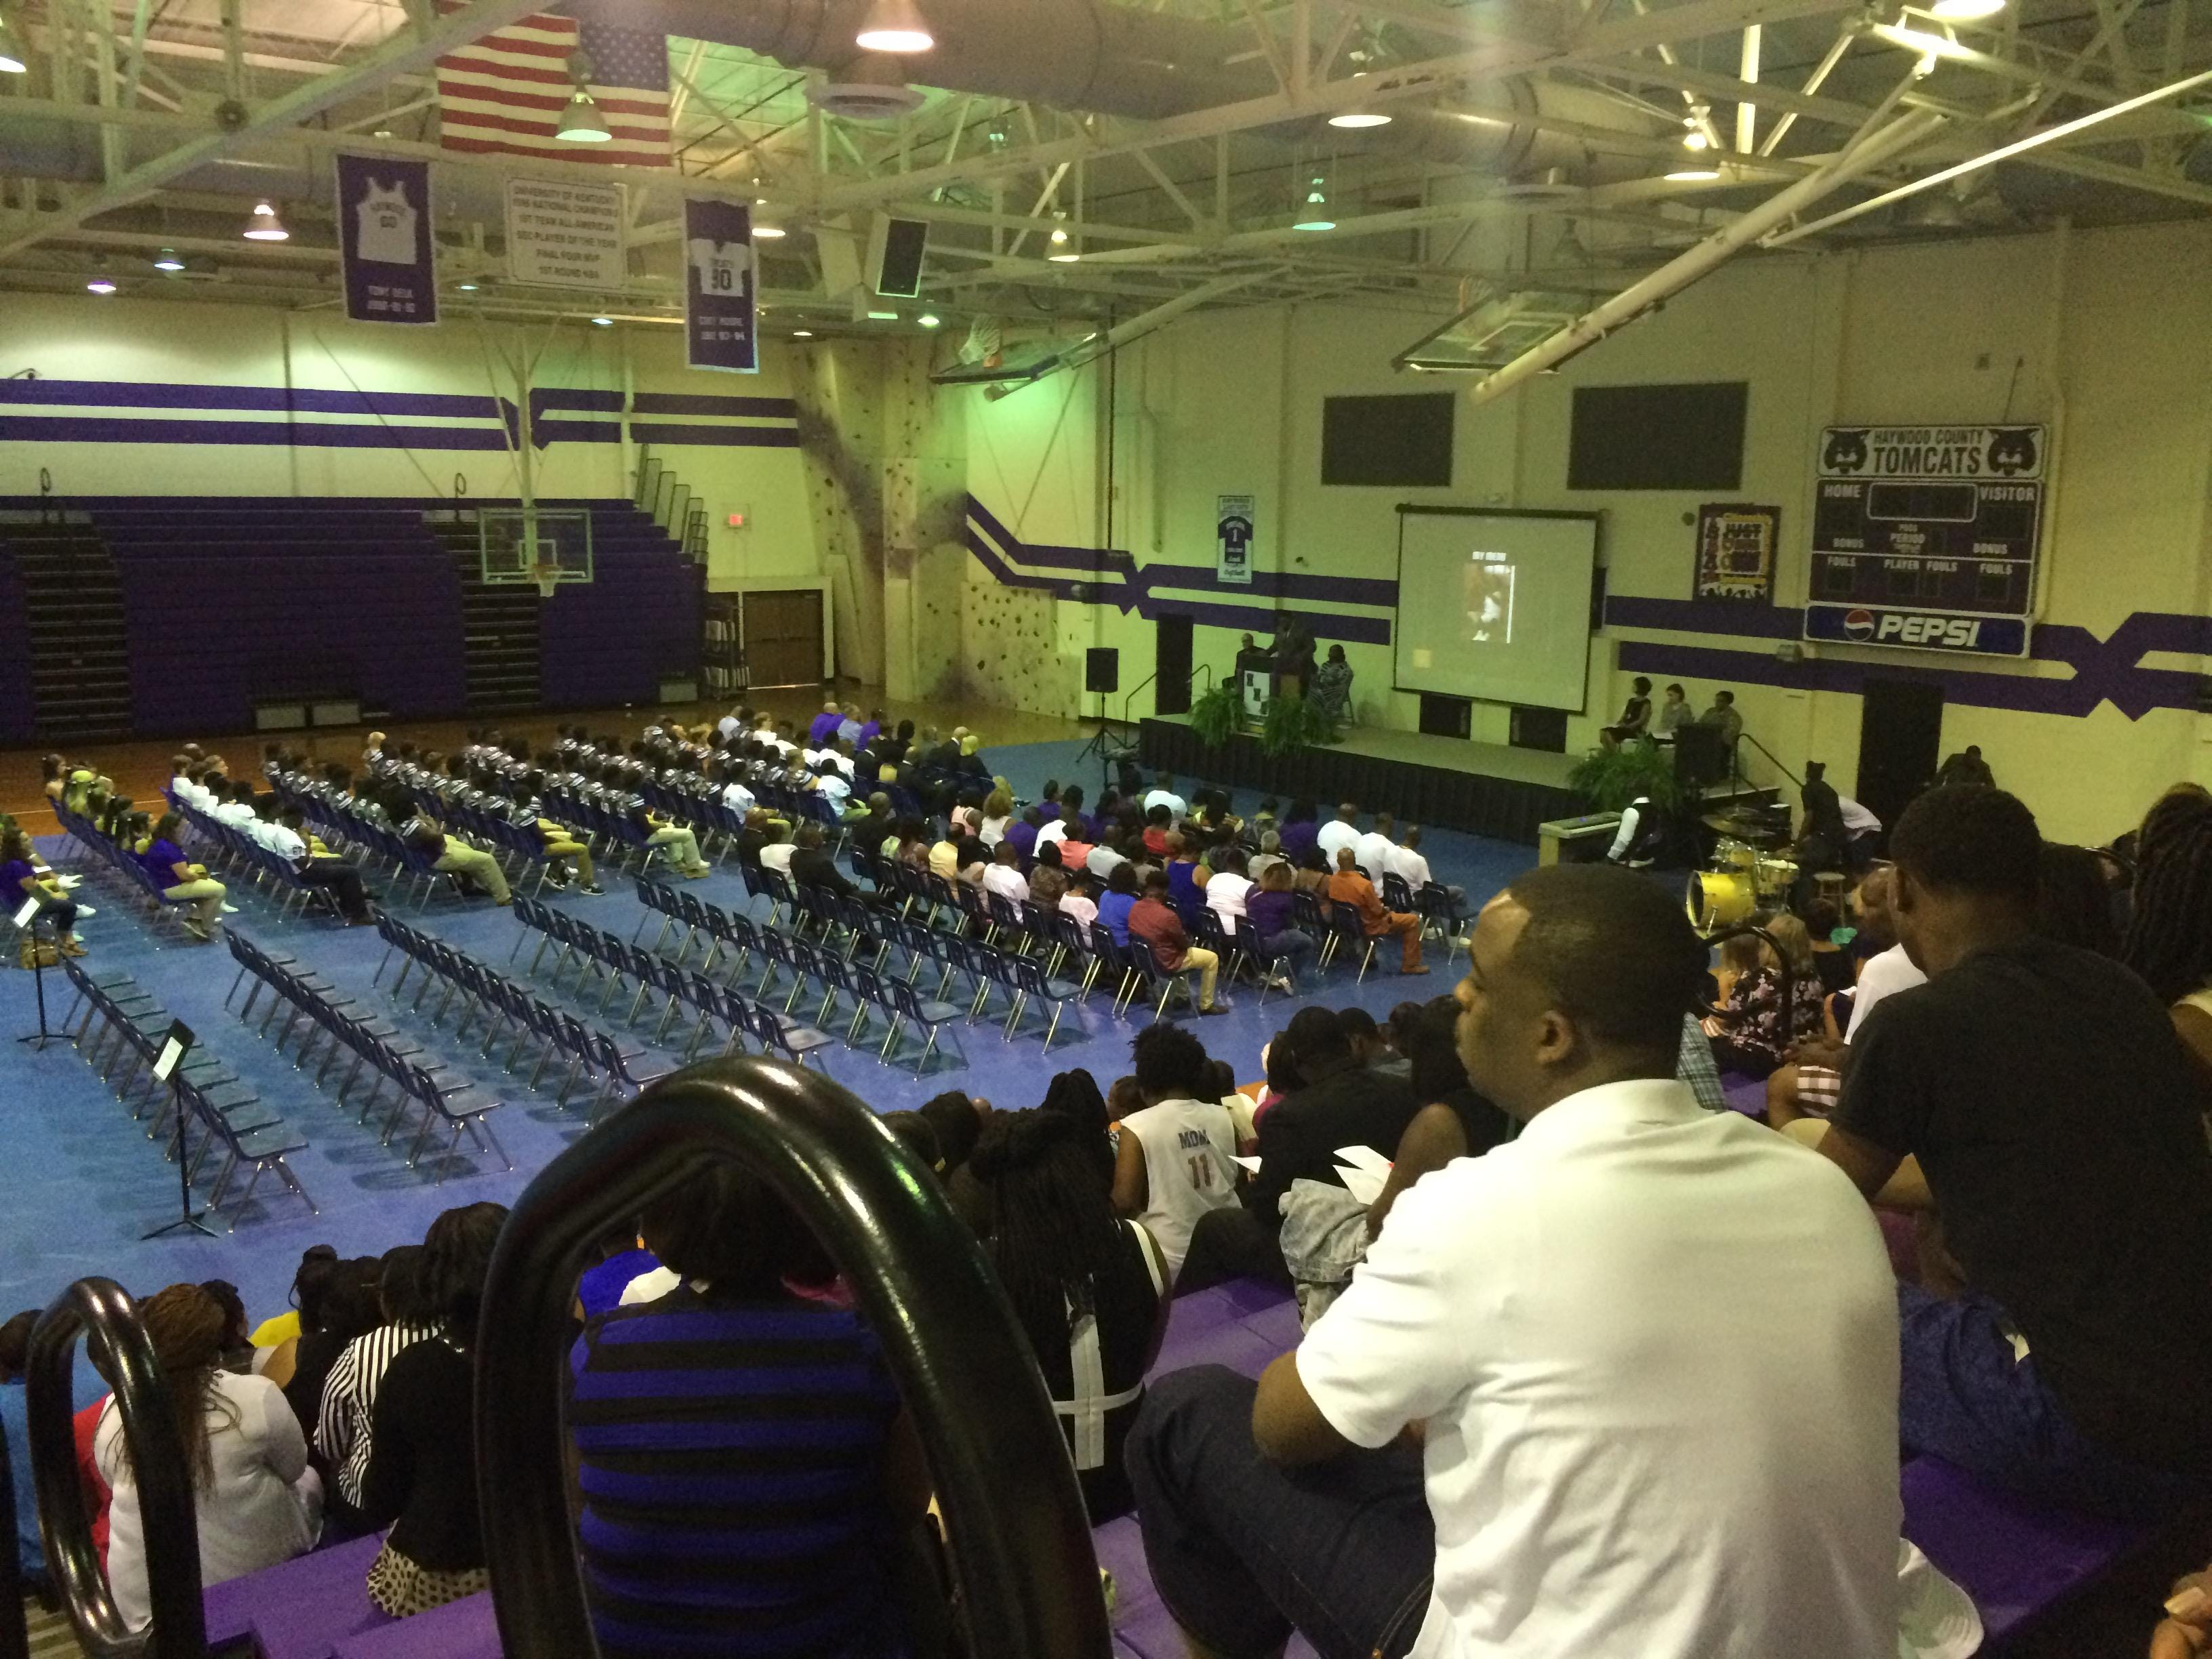 The home side of the Haywood High School gym was filled and people lined the back wall for Tekarian Maclin's memorial service Sunday evening.